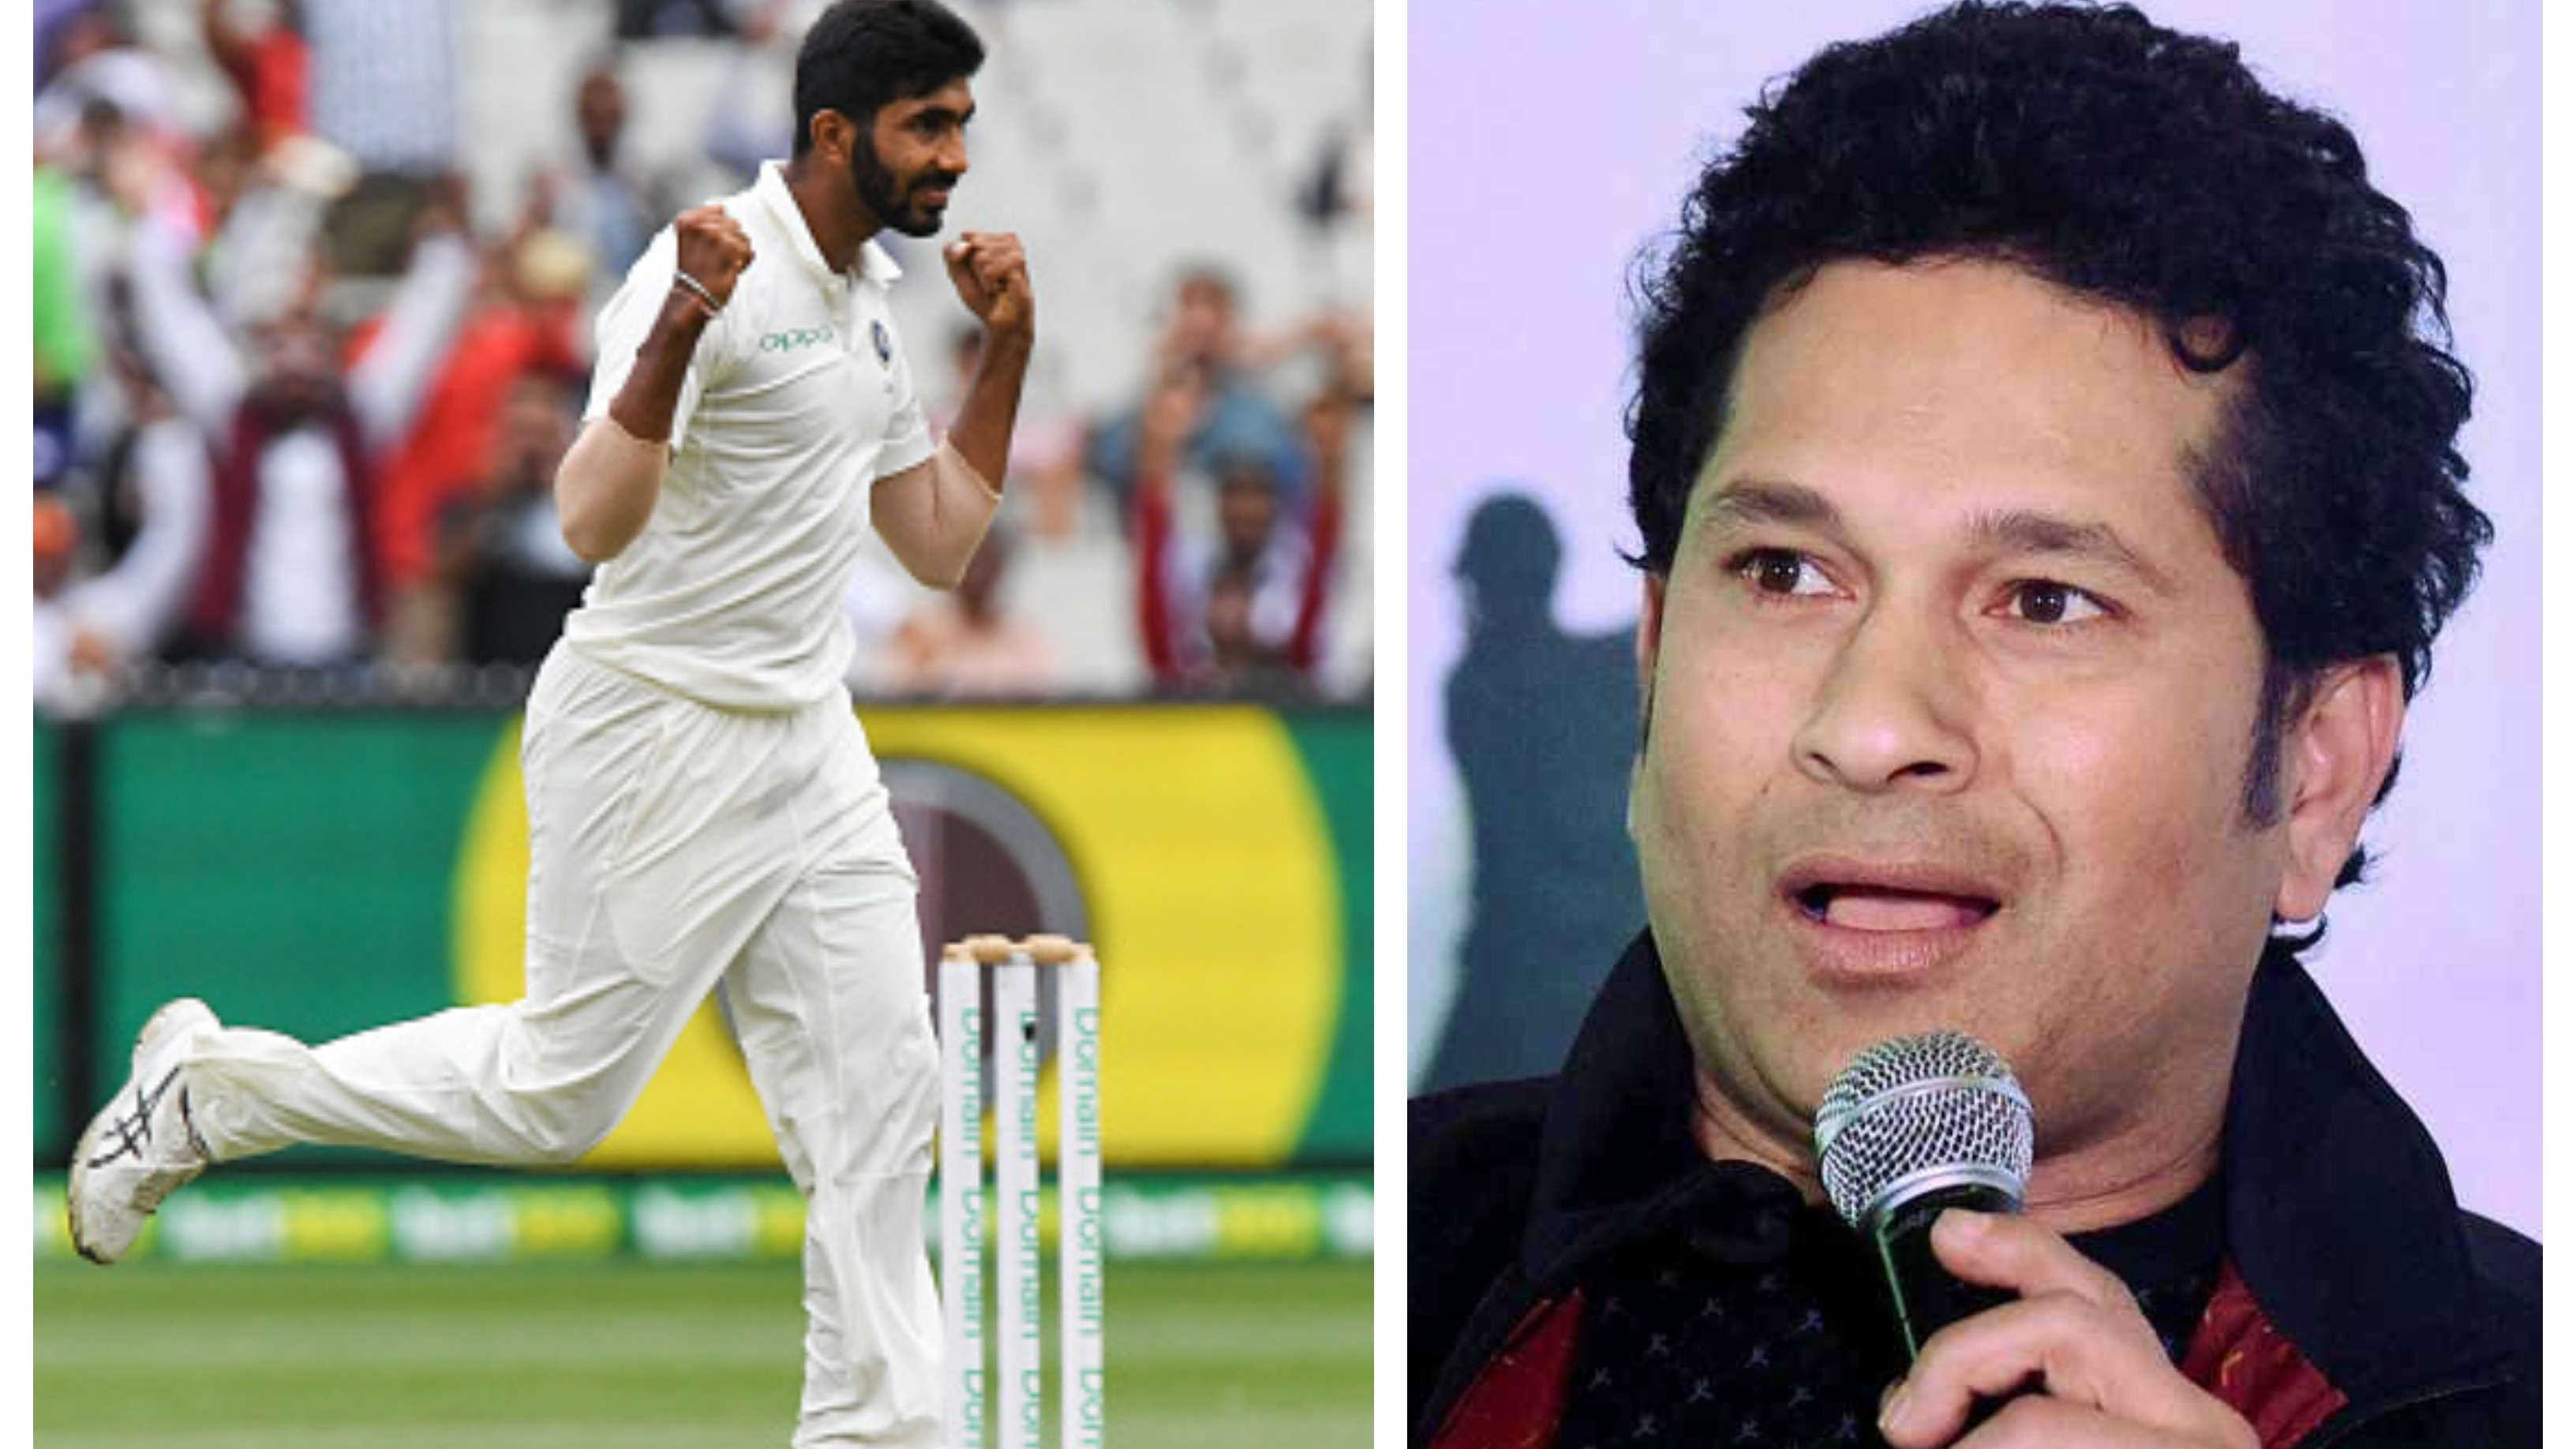 Sachin Tendulkar not surprised by Bumrah's emergence as a destructive bowler